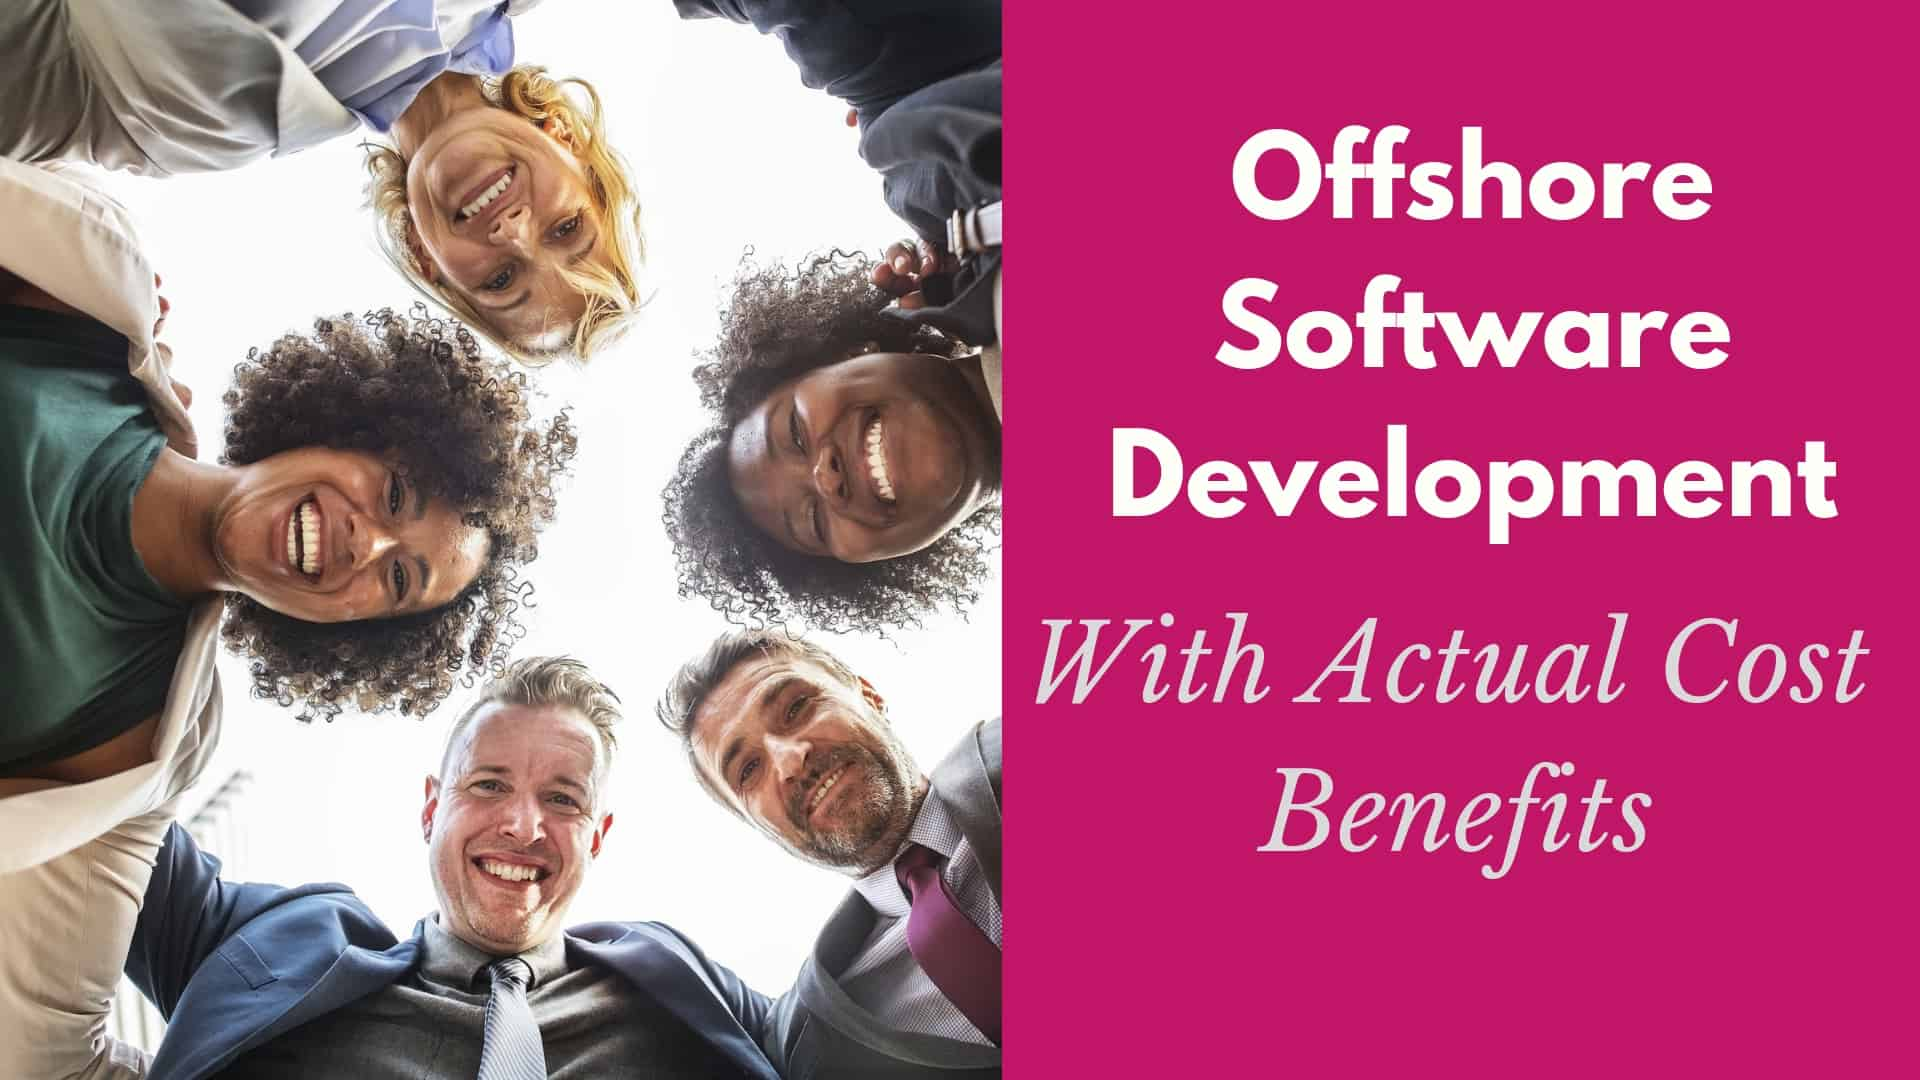 Offshore Software Development With Actual Cost Benefits